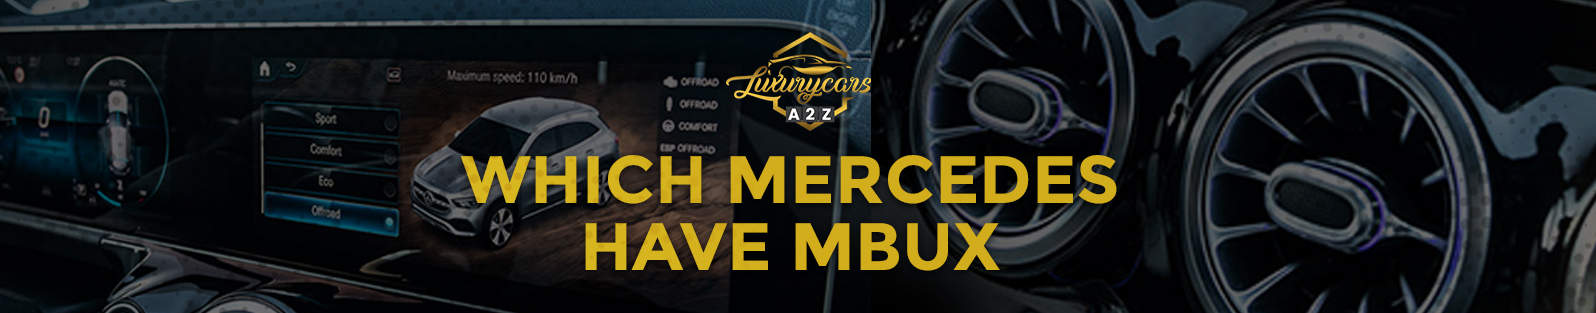 which mercedes have mbux